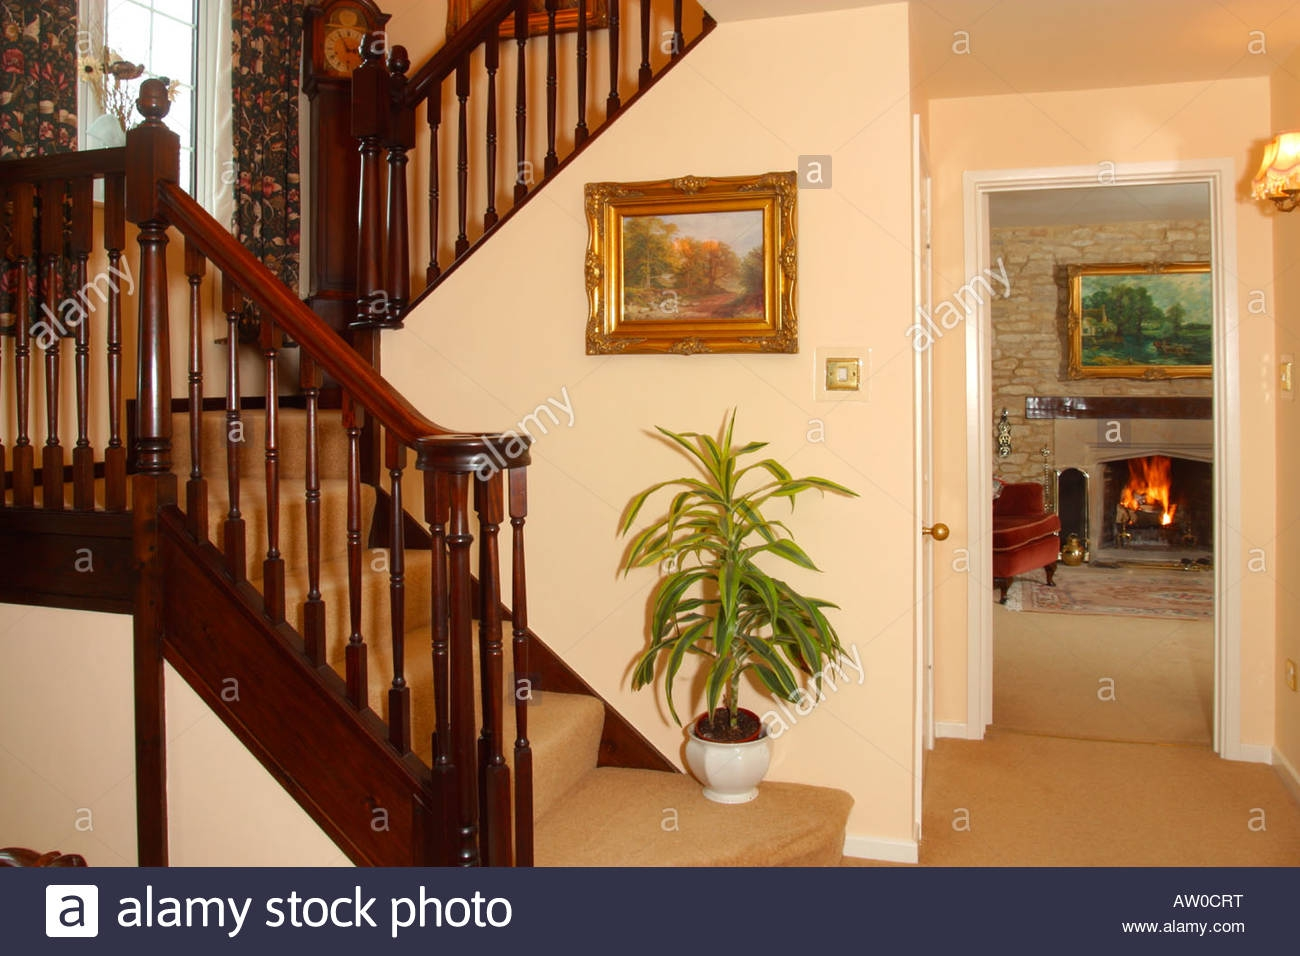 uk property house interior traditional hall stairs and view to